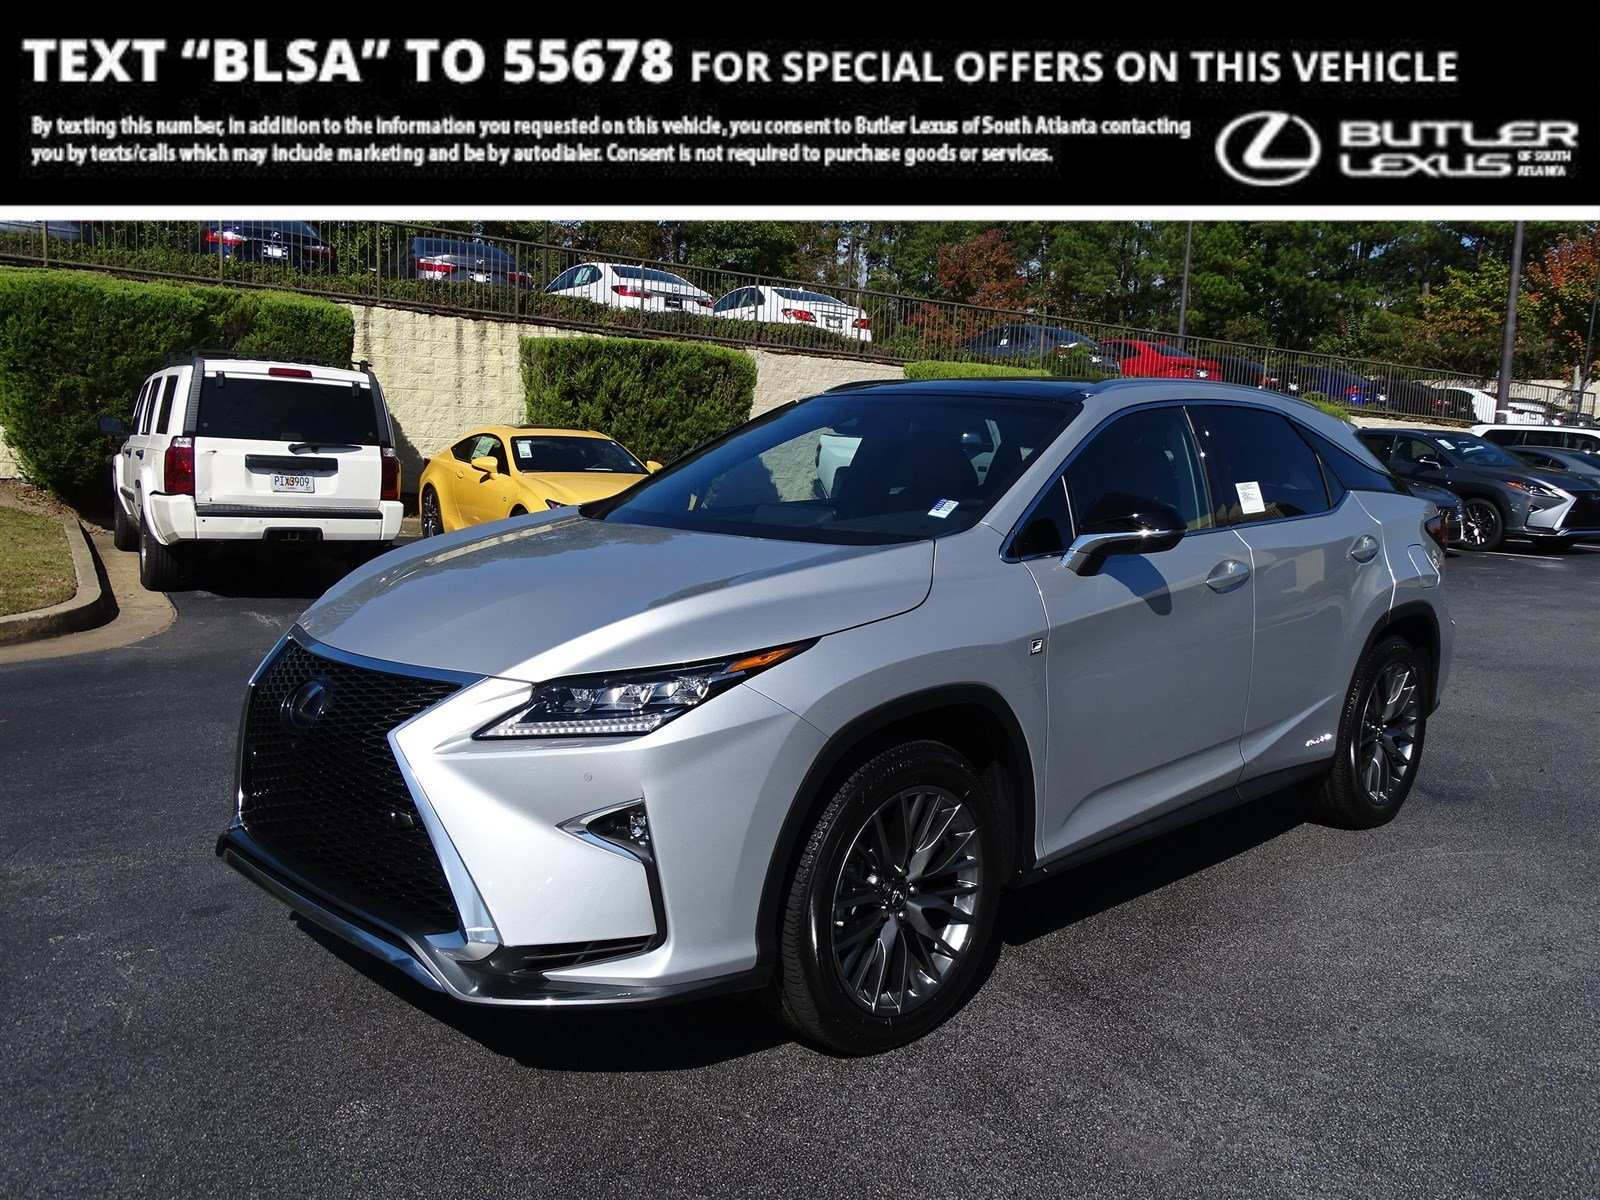 52 All New Lexus Is F Sport 2019 Configurations with Lexus Is F Sport 2019